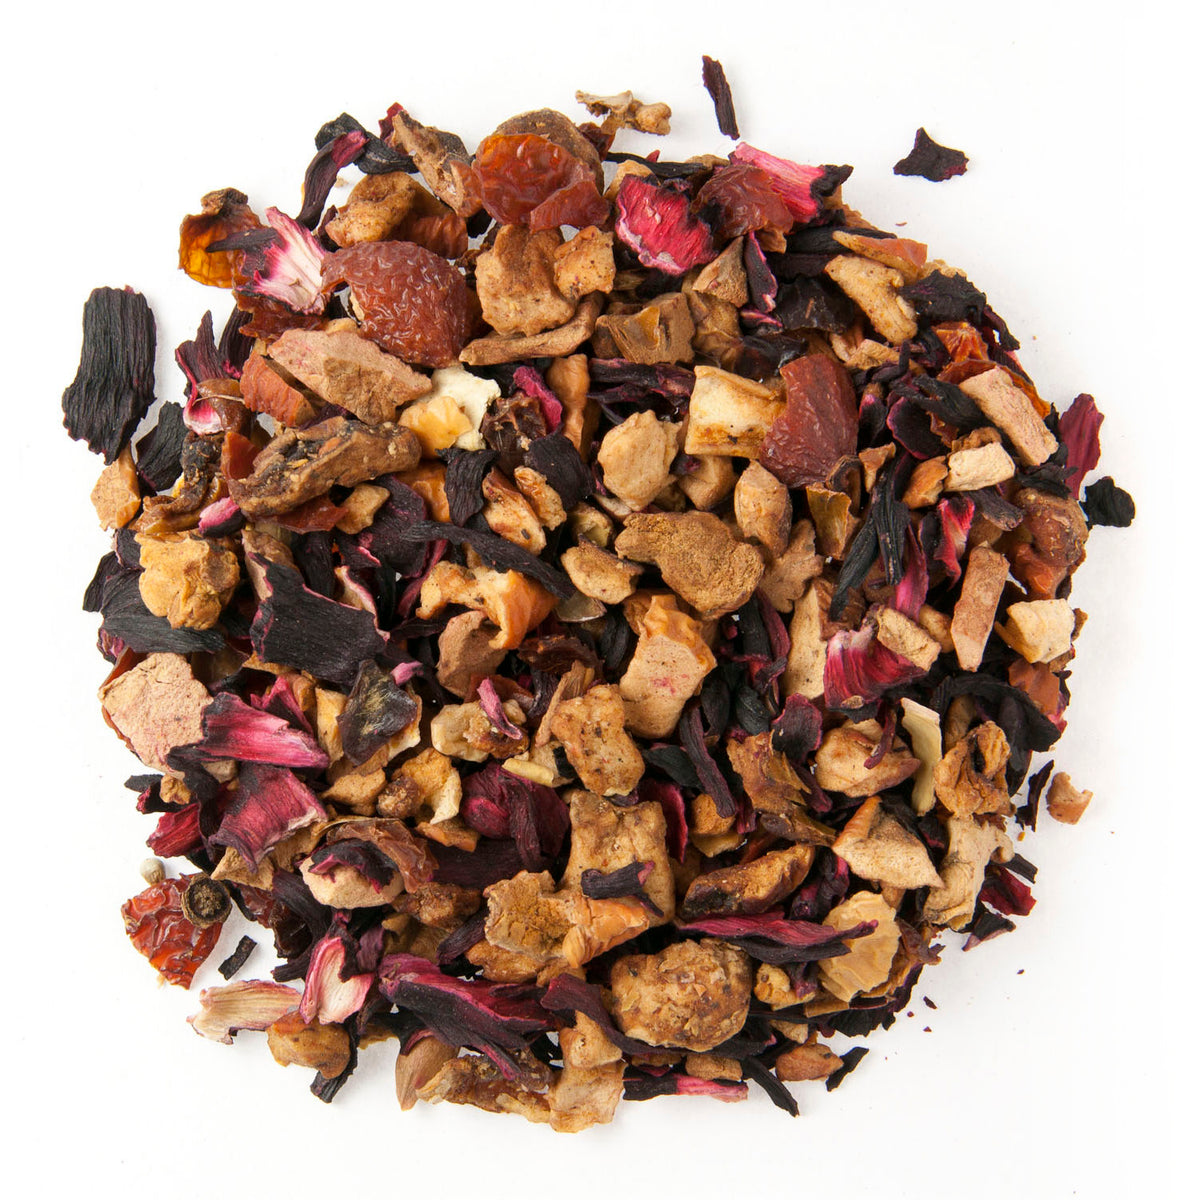 Kea Lani Orange Pineapple Loose Leaf Tea